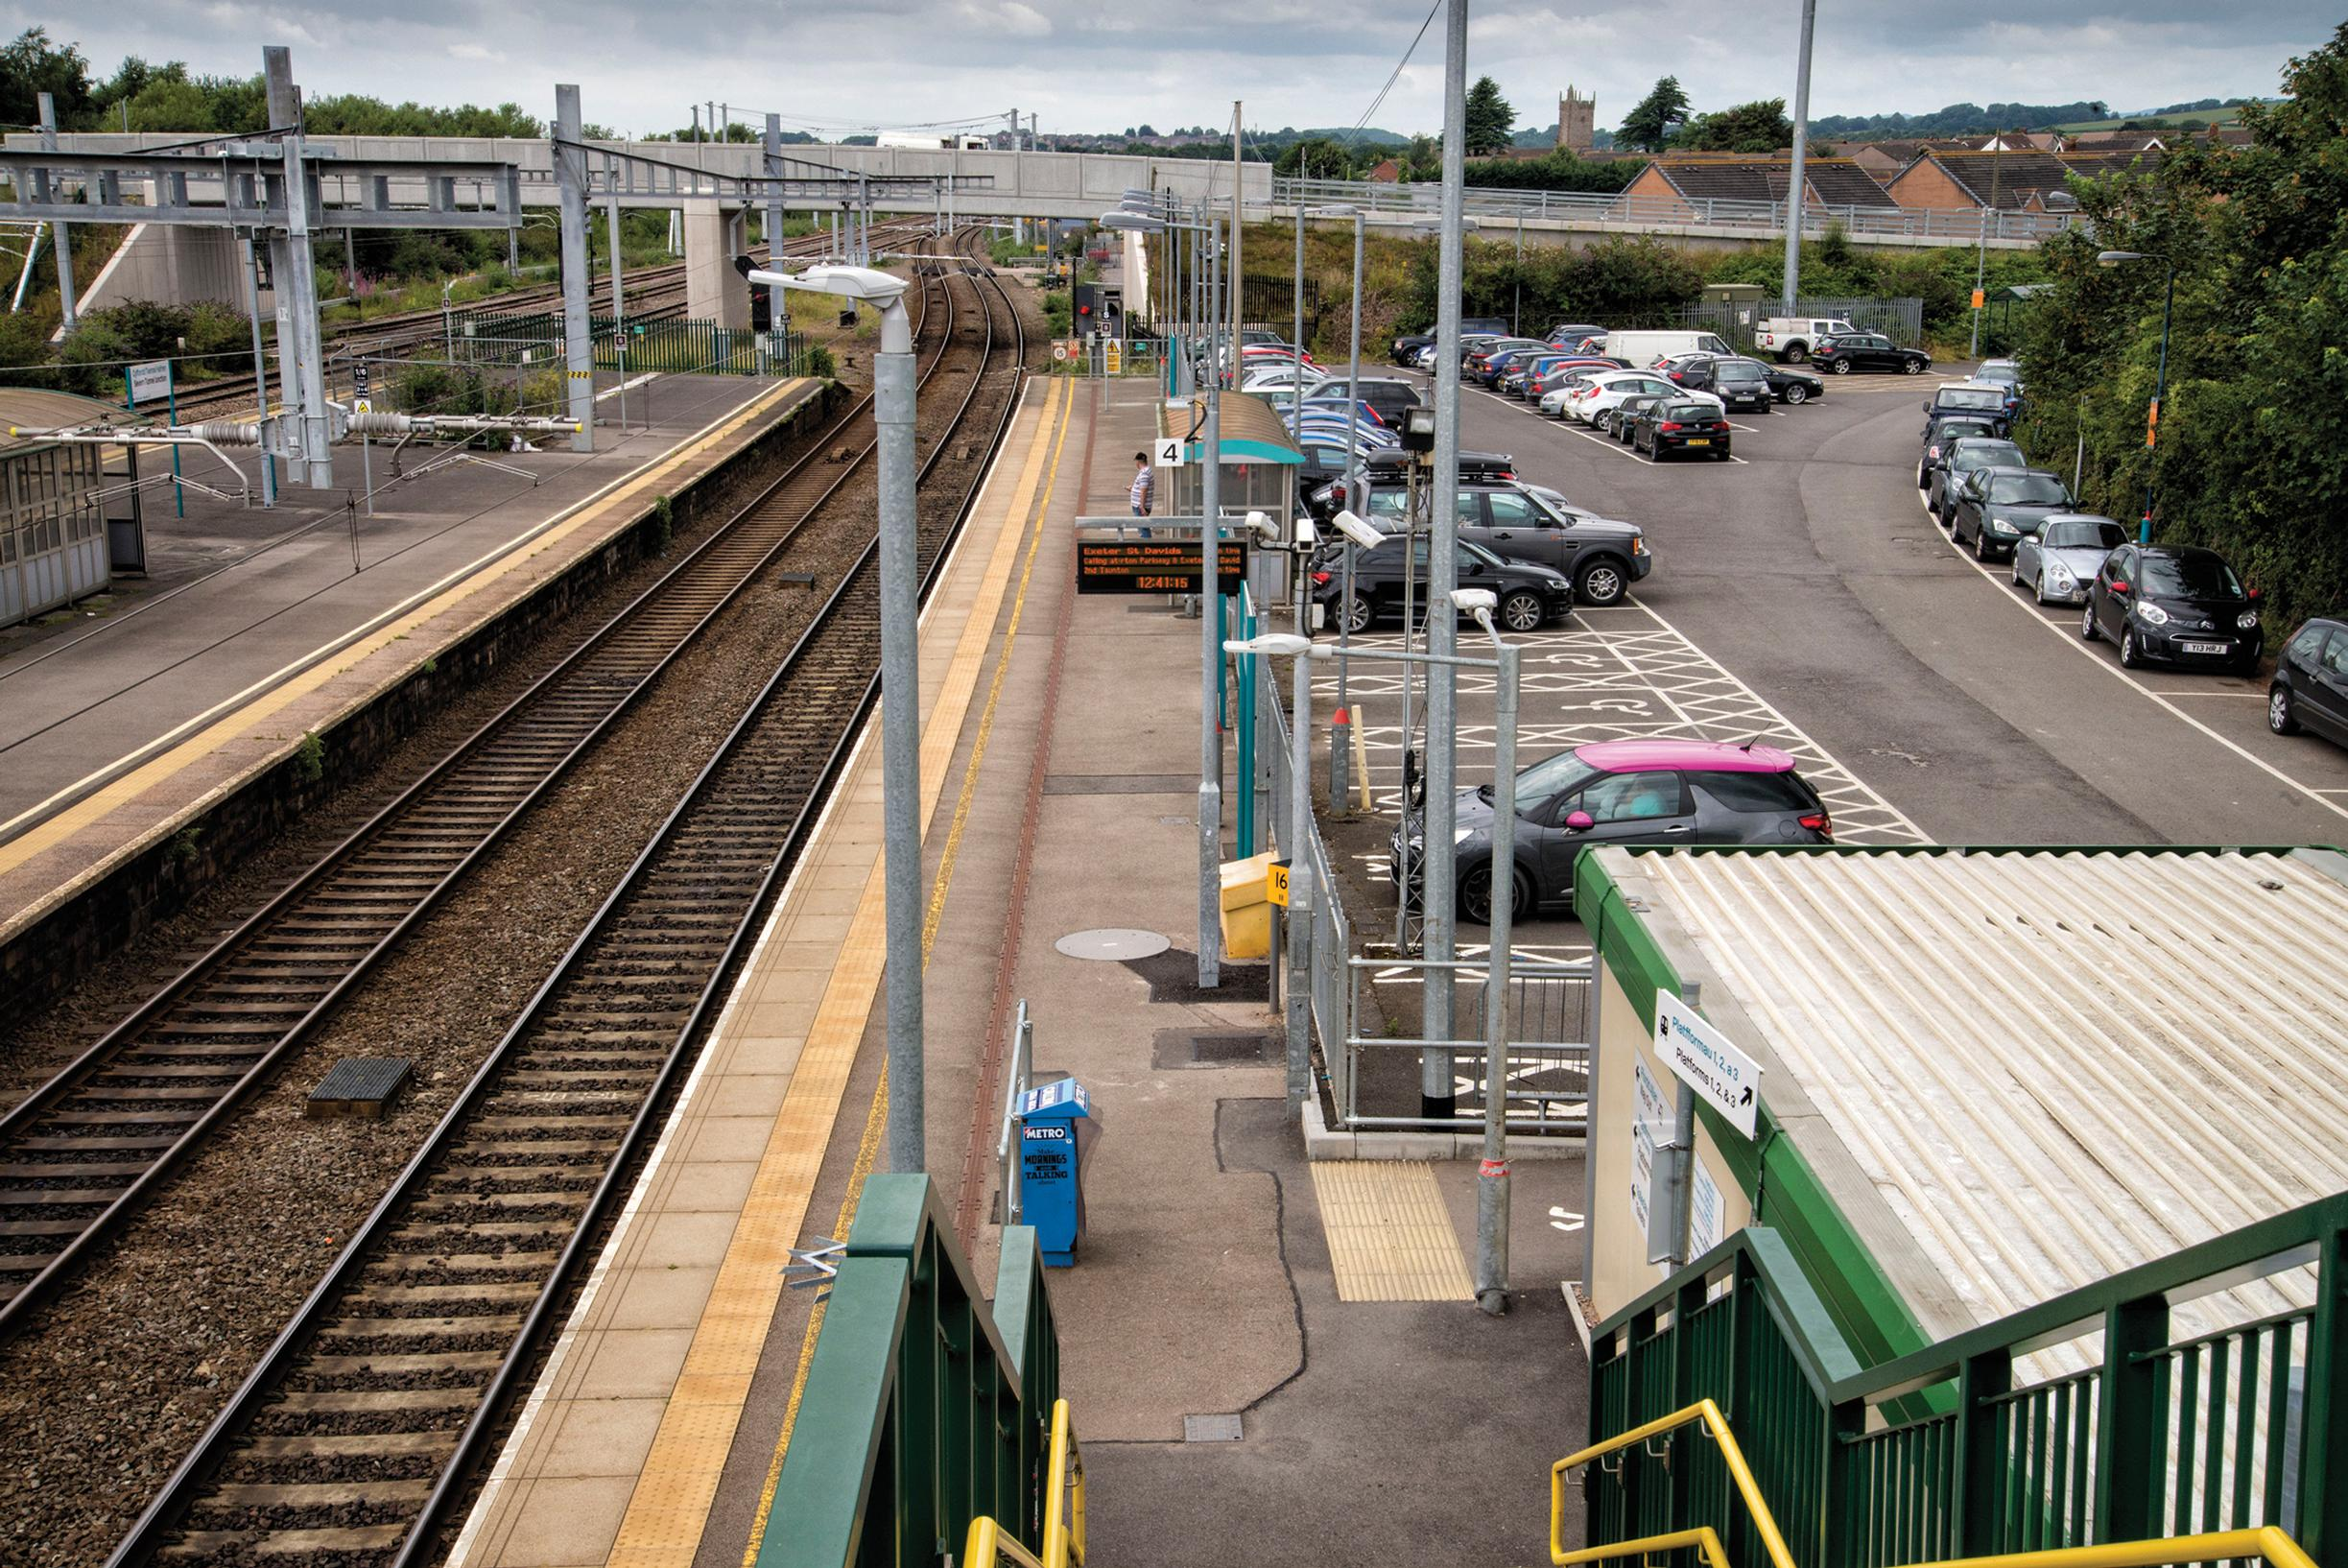 Grand Union Trains plans to invest in additional car parking and improved road access at Severn Tunnel Junction